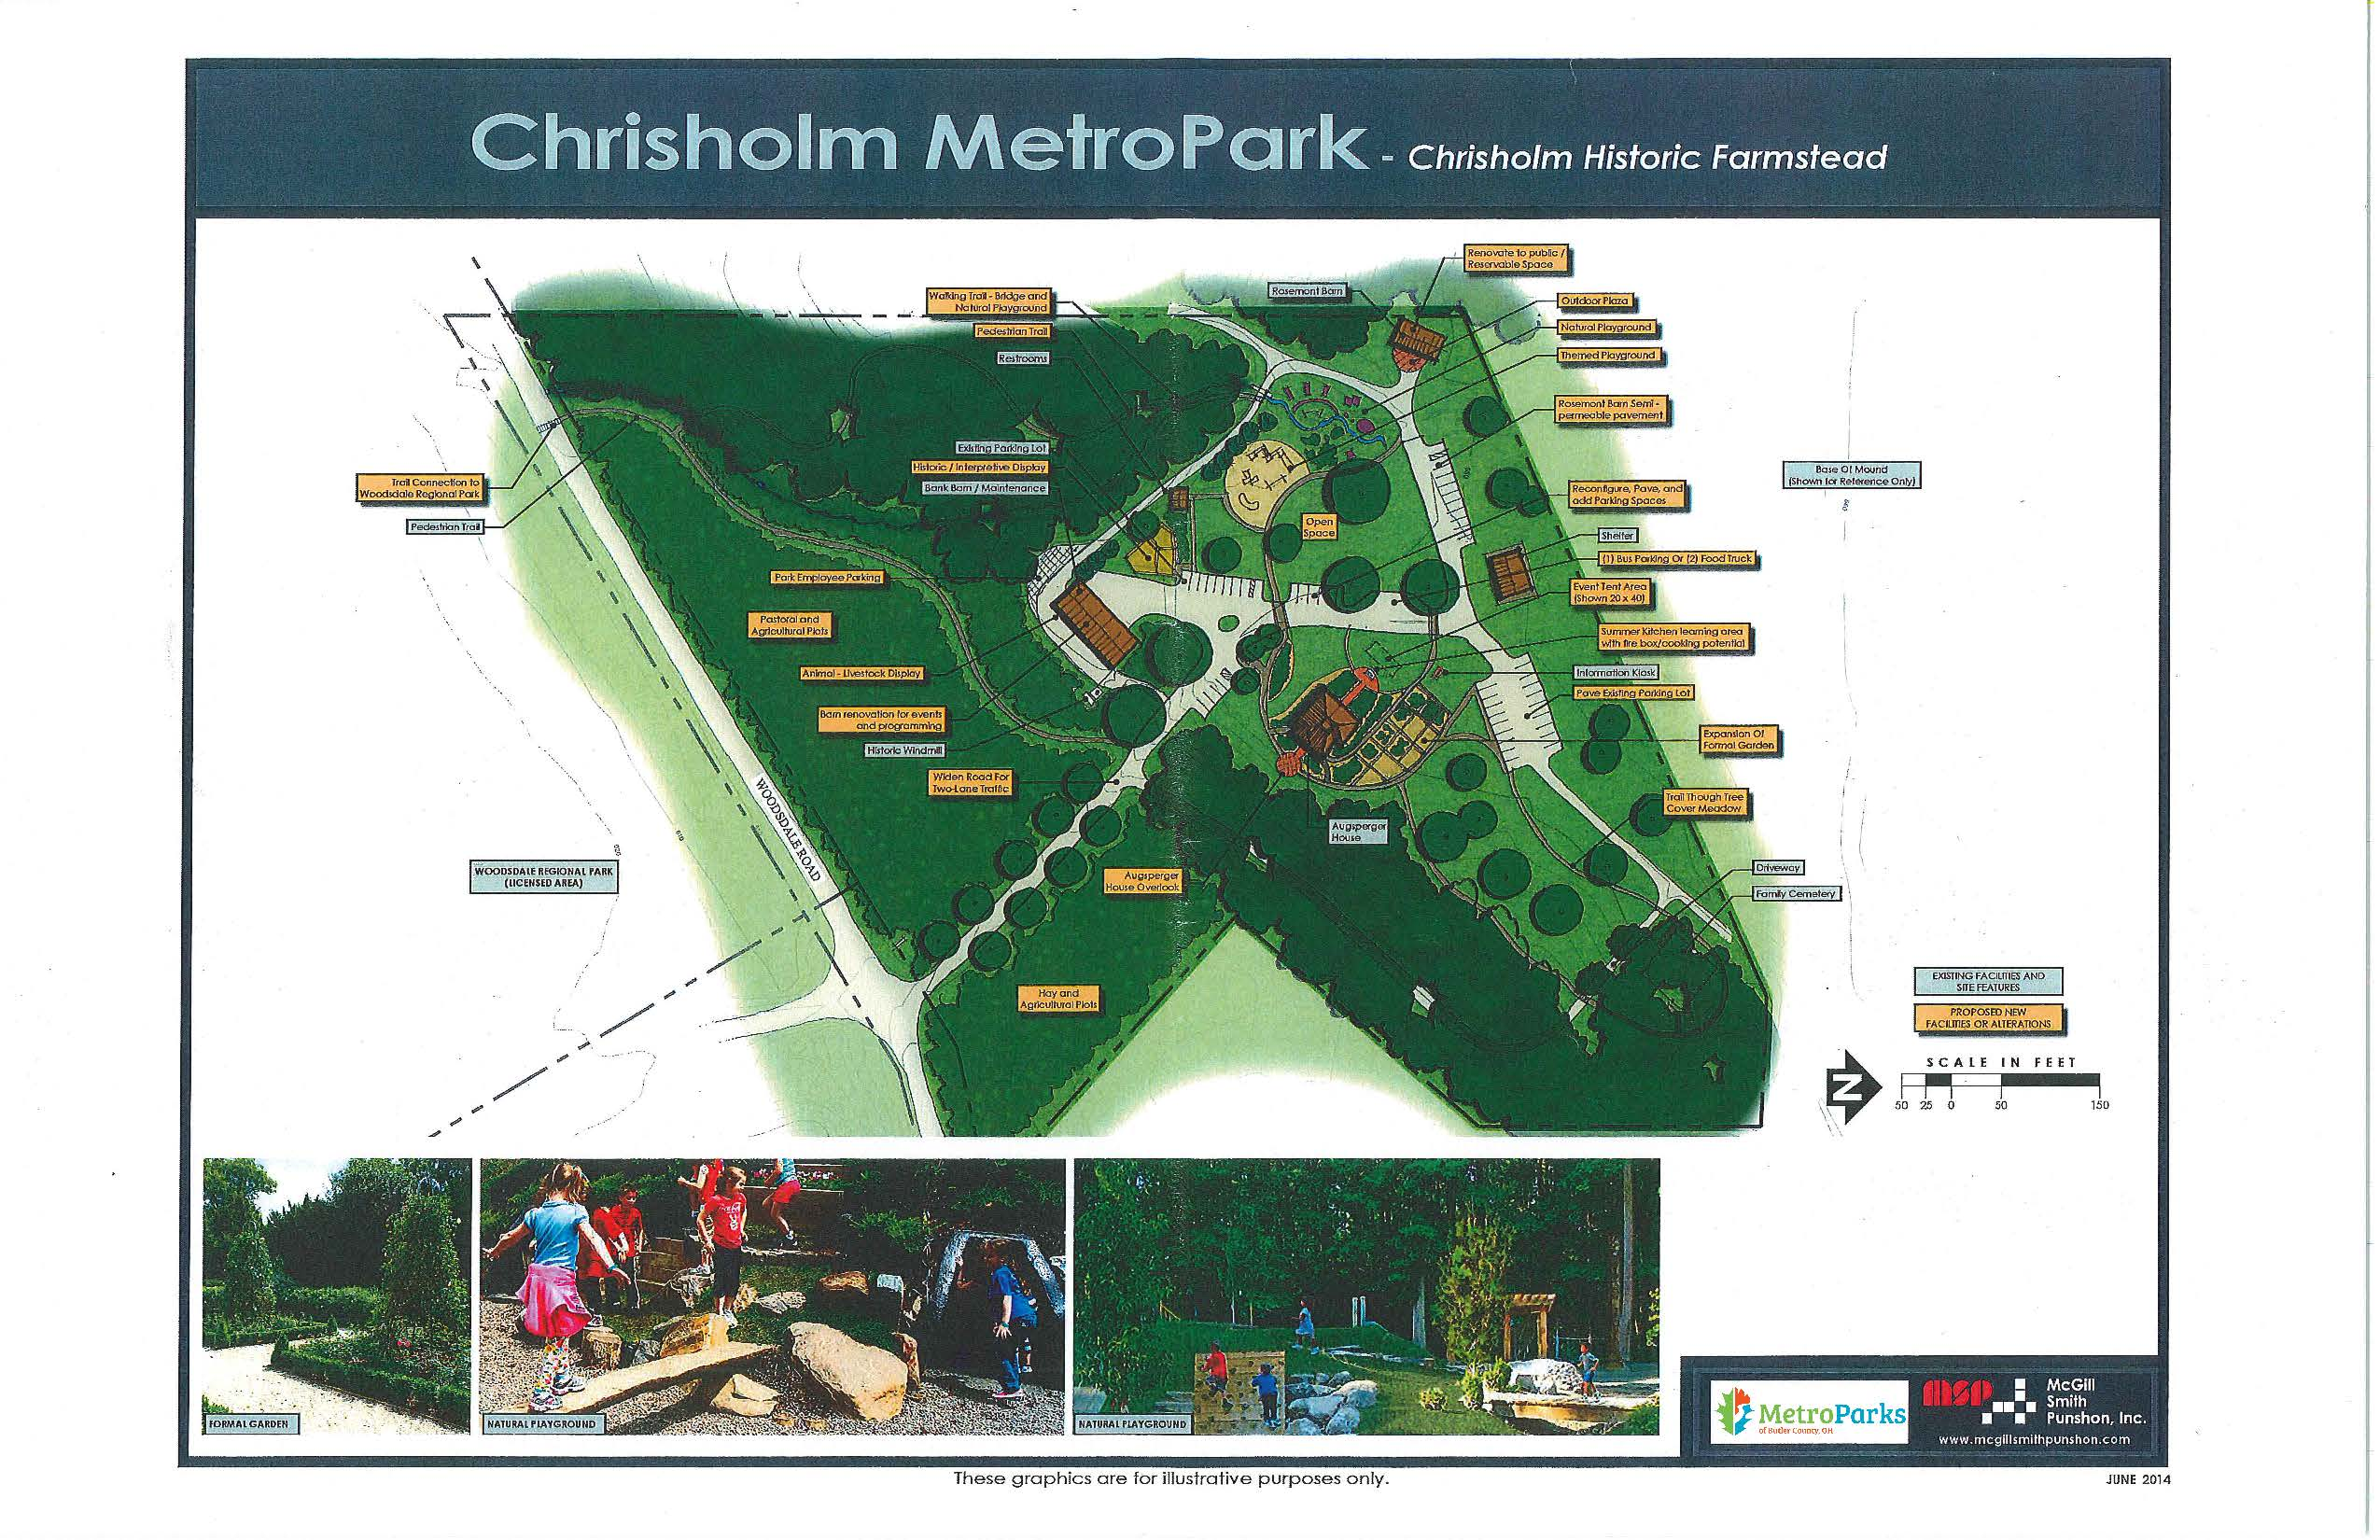 Chrisholm Historic Farmstead Master Plan